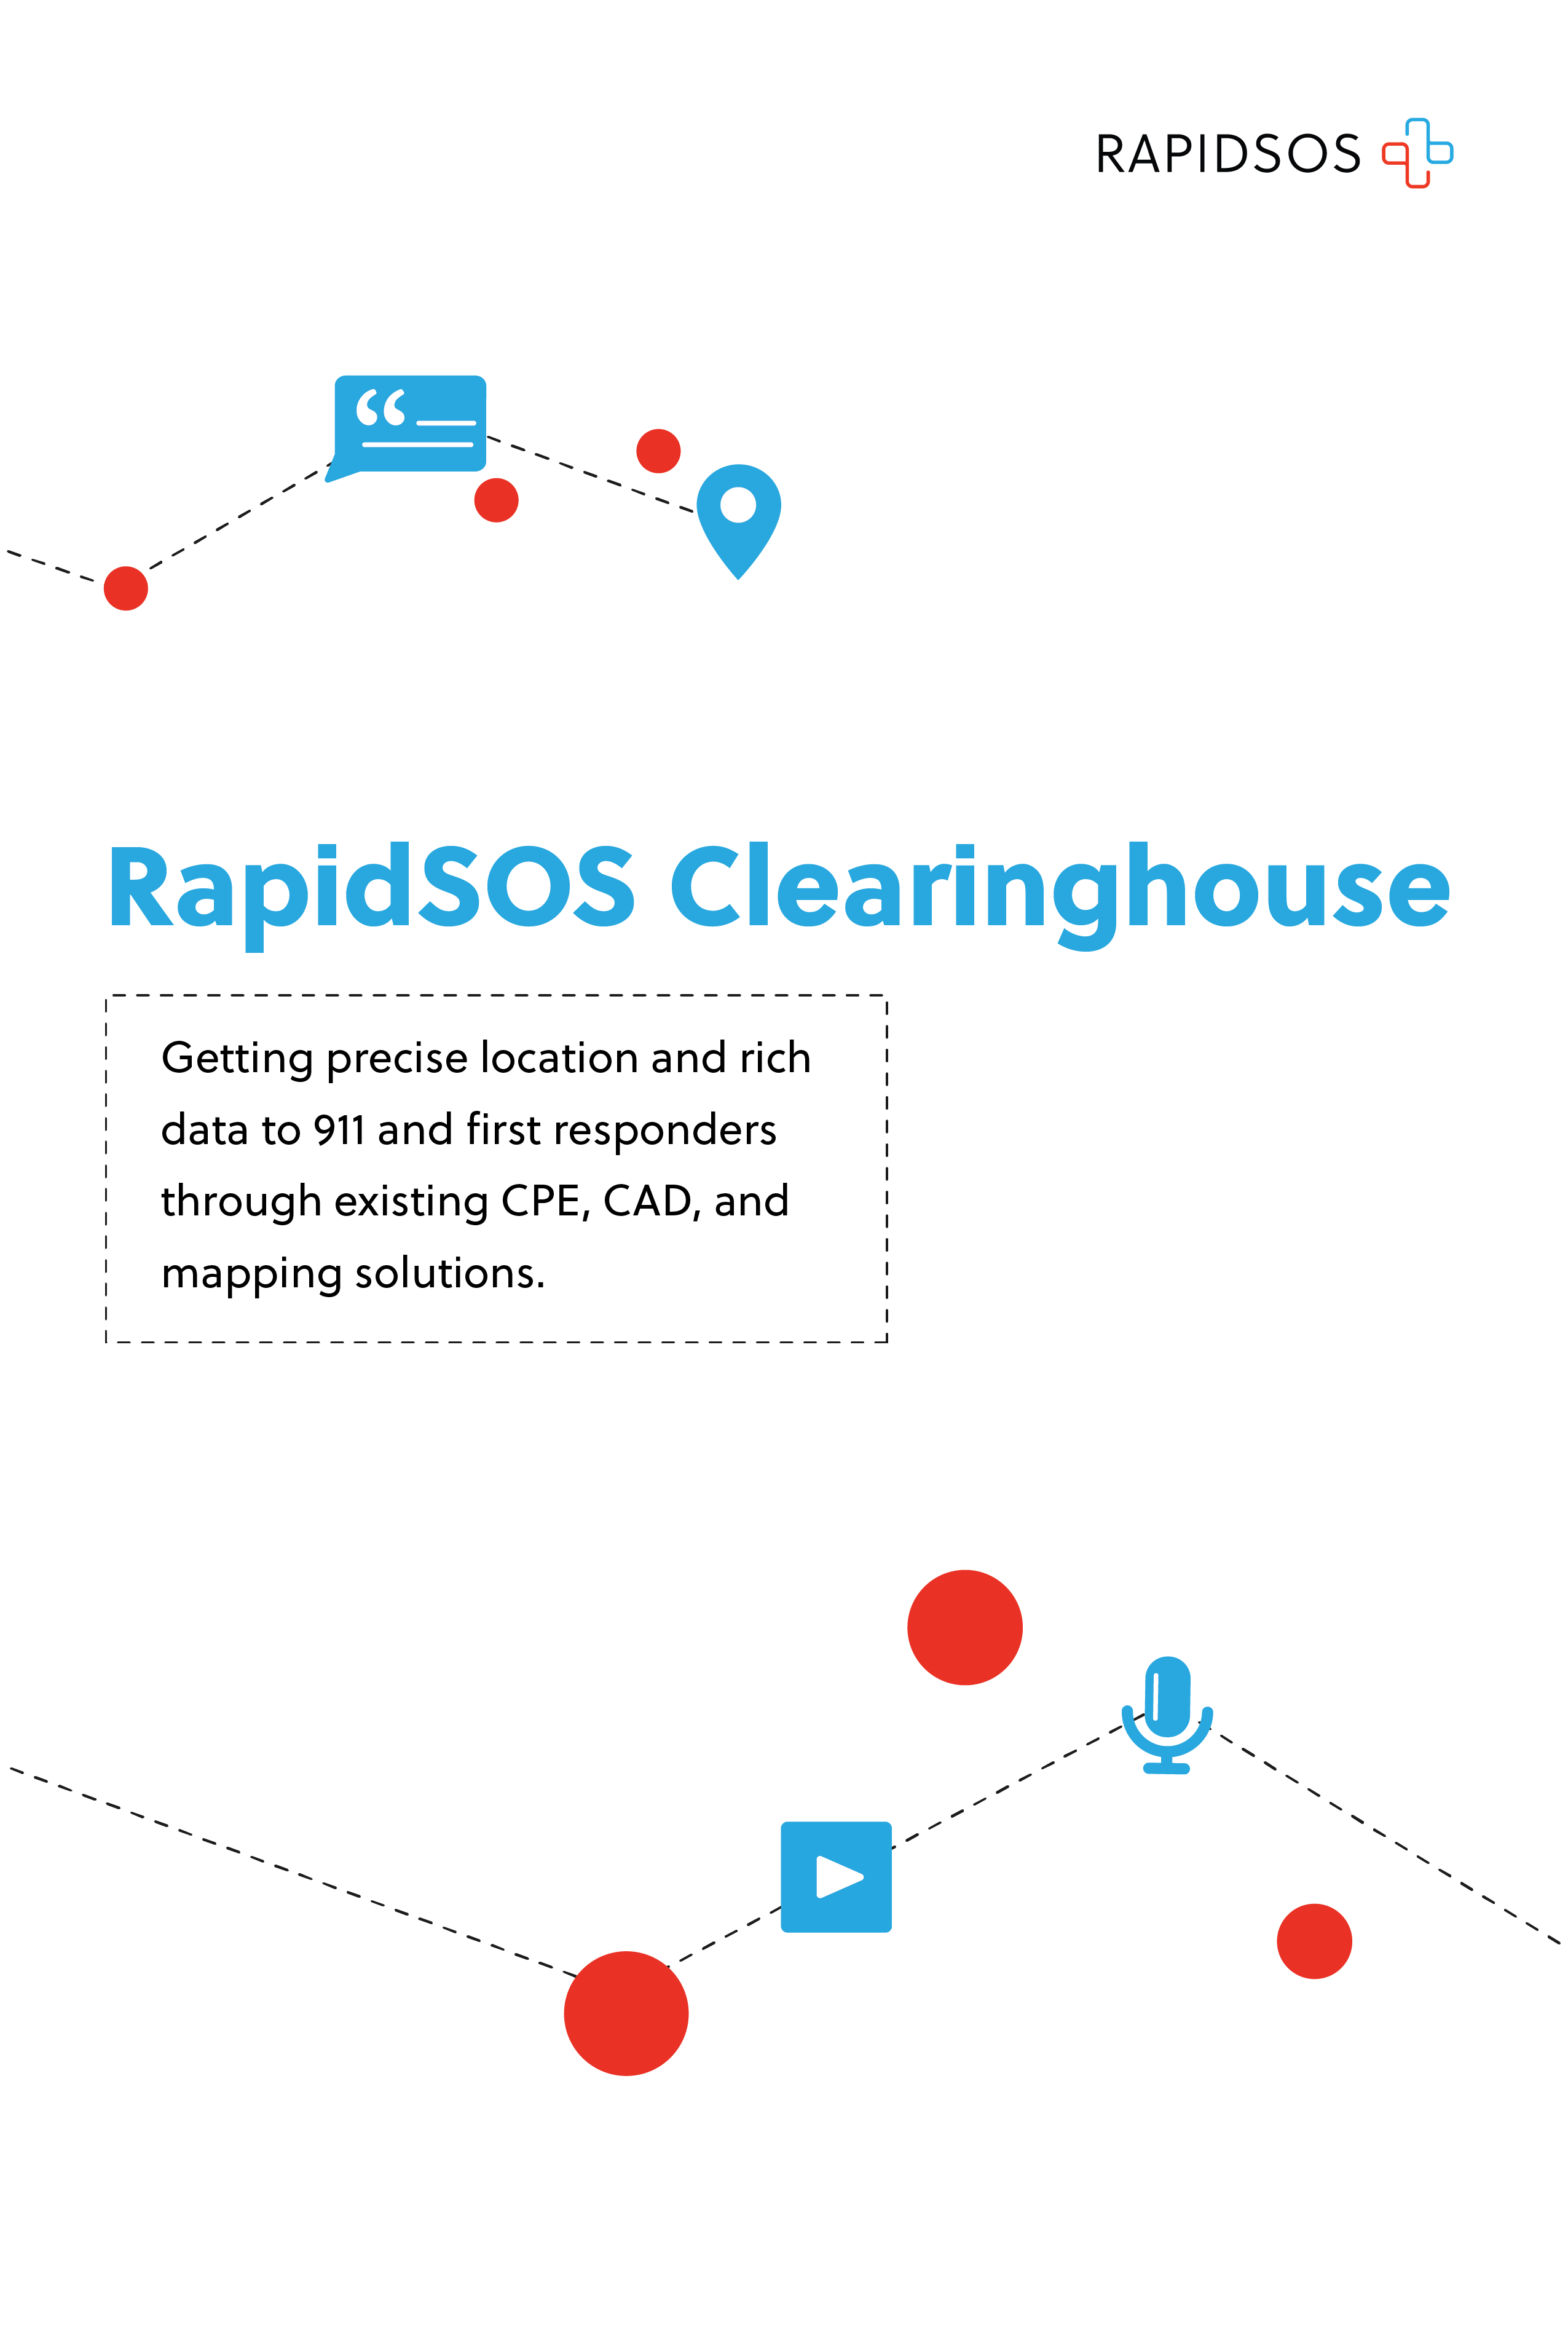 ra[pidsos clearinghouse cover-02